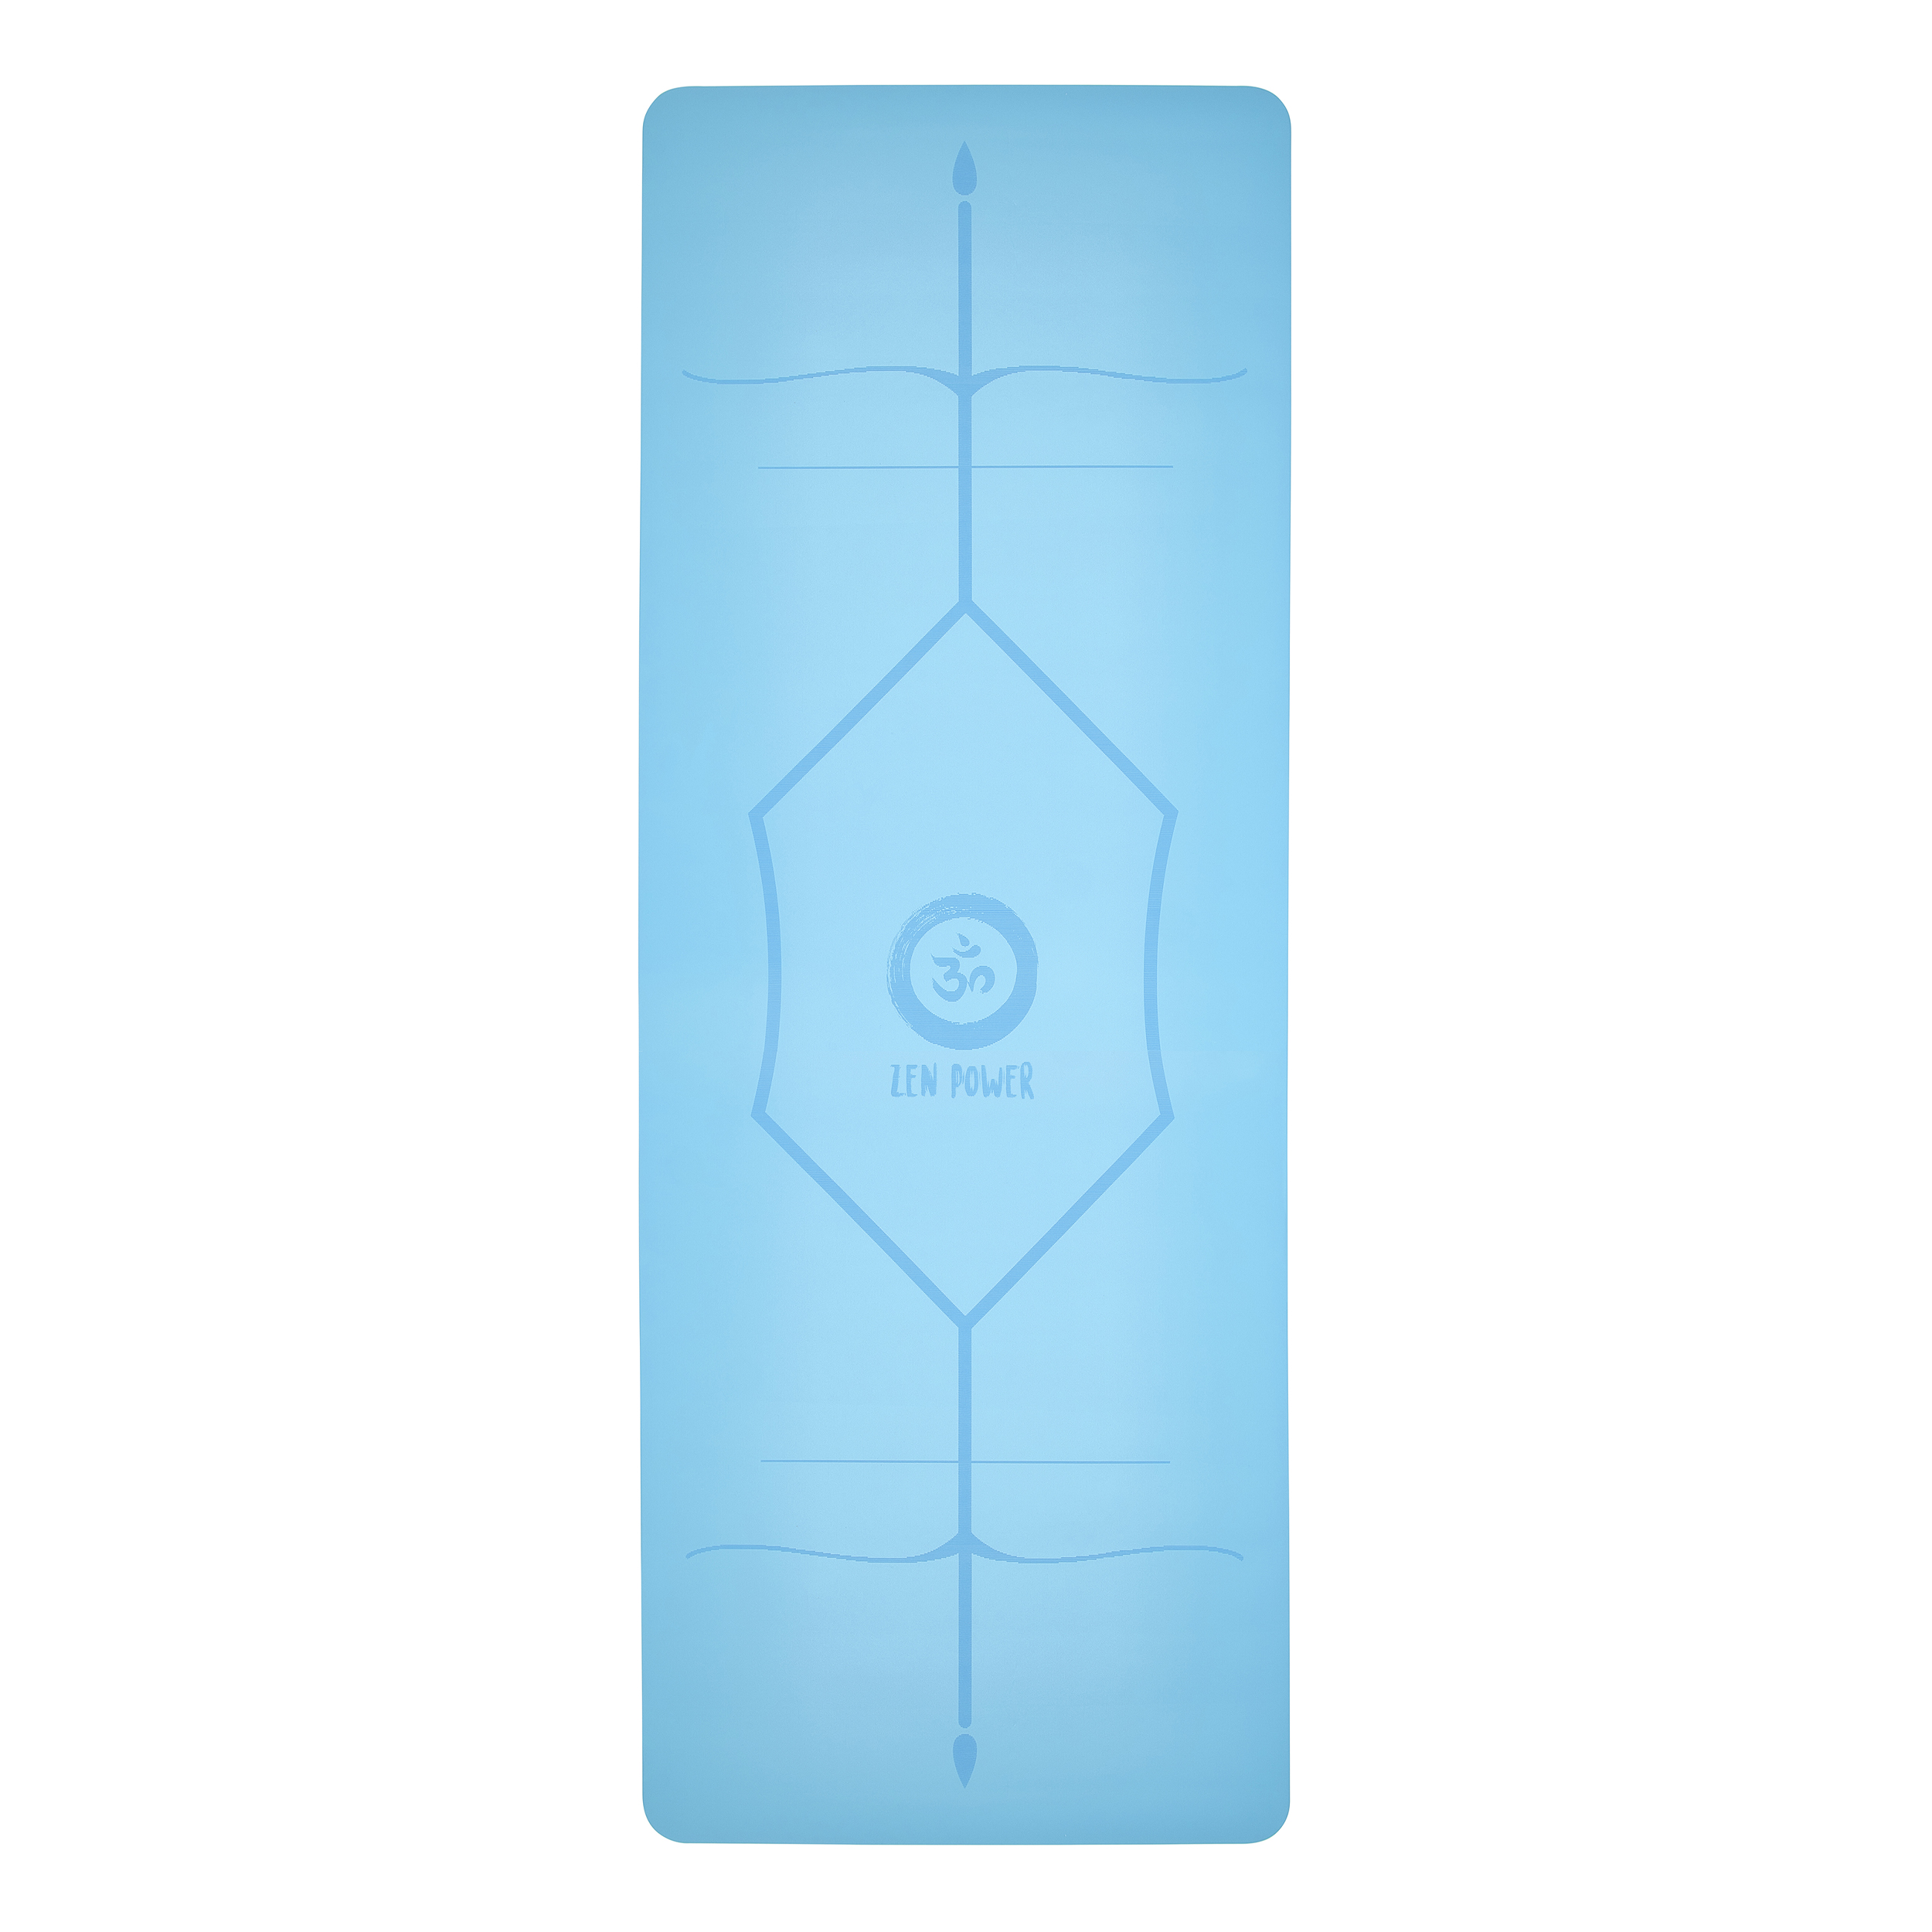 ZenPower Yogamatte Mandala - Light Blue